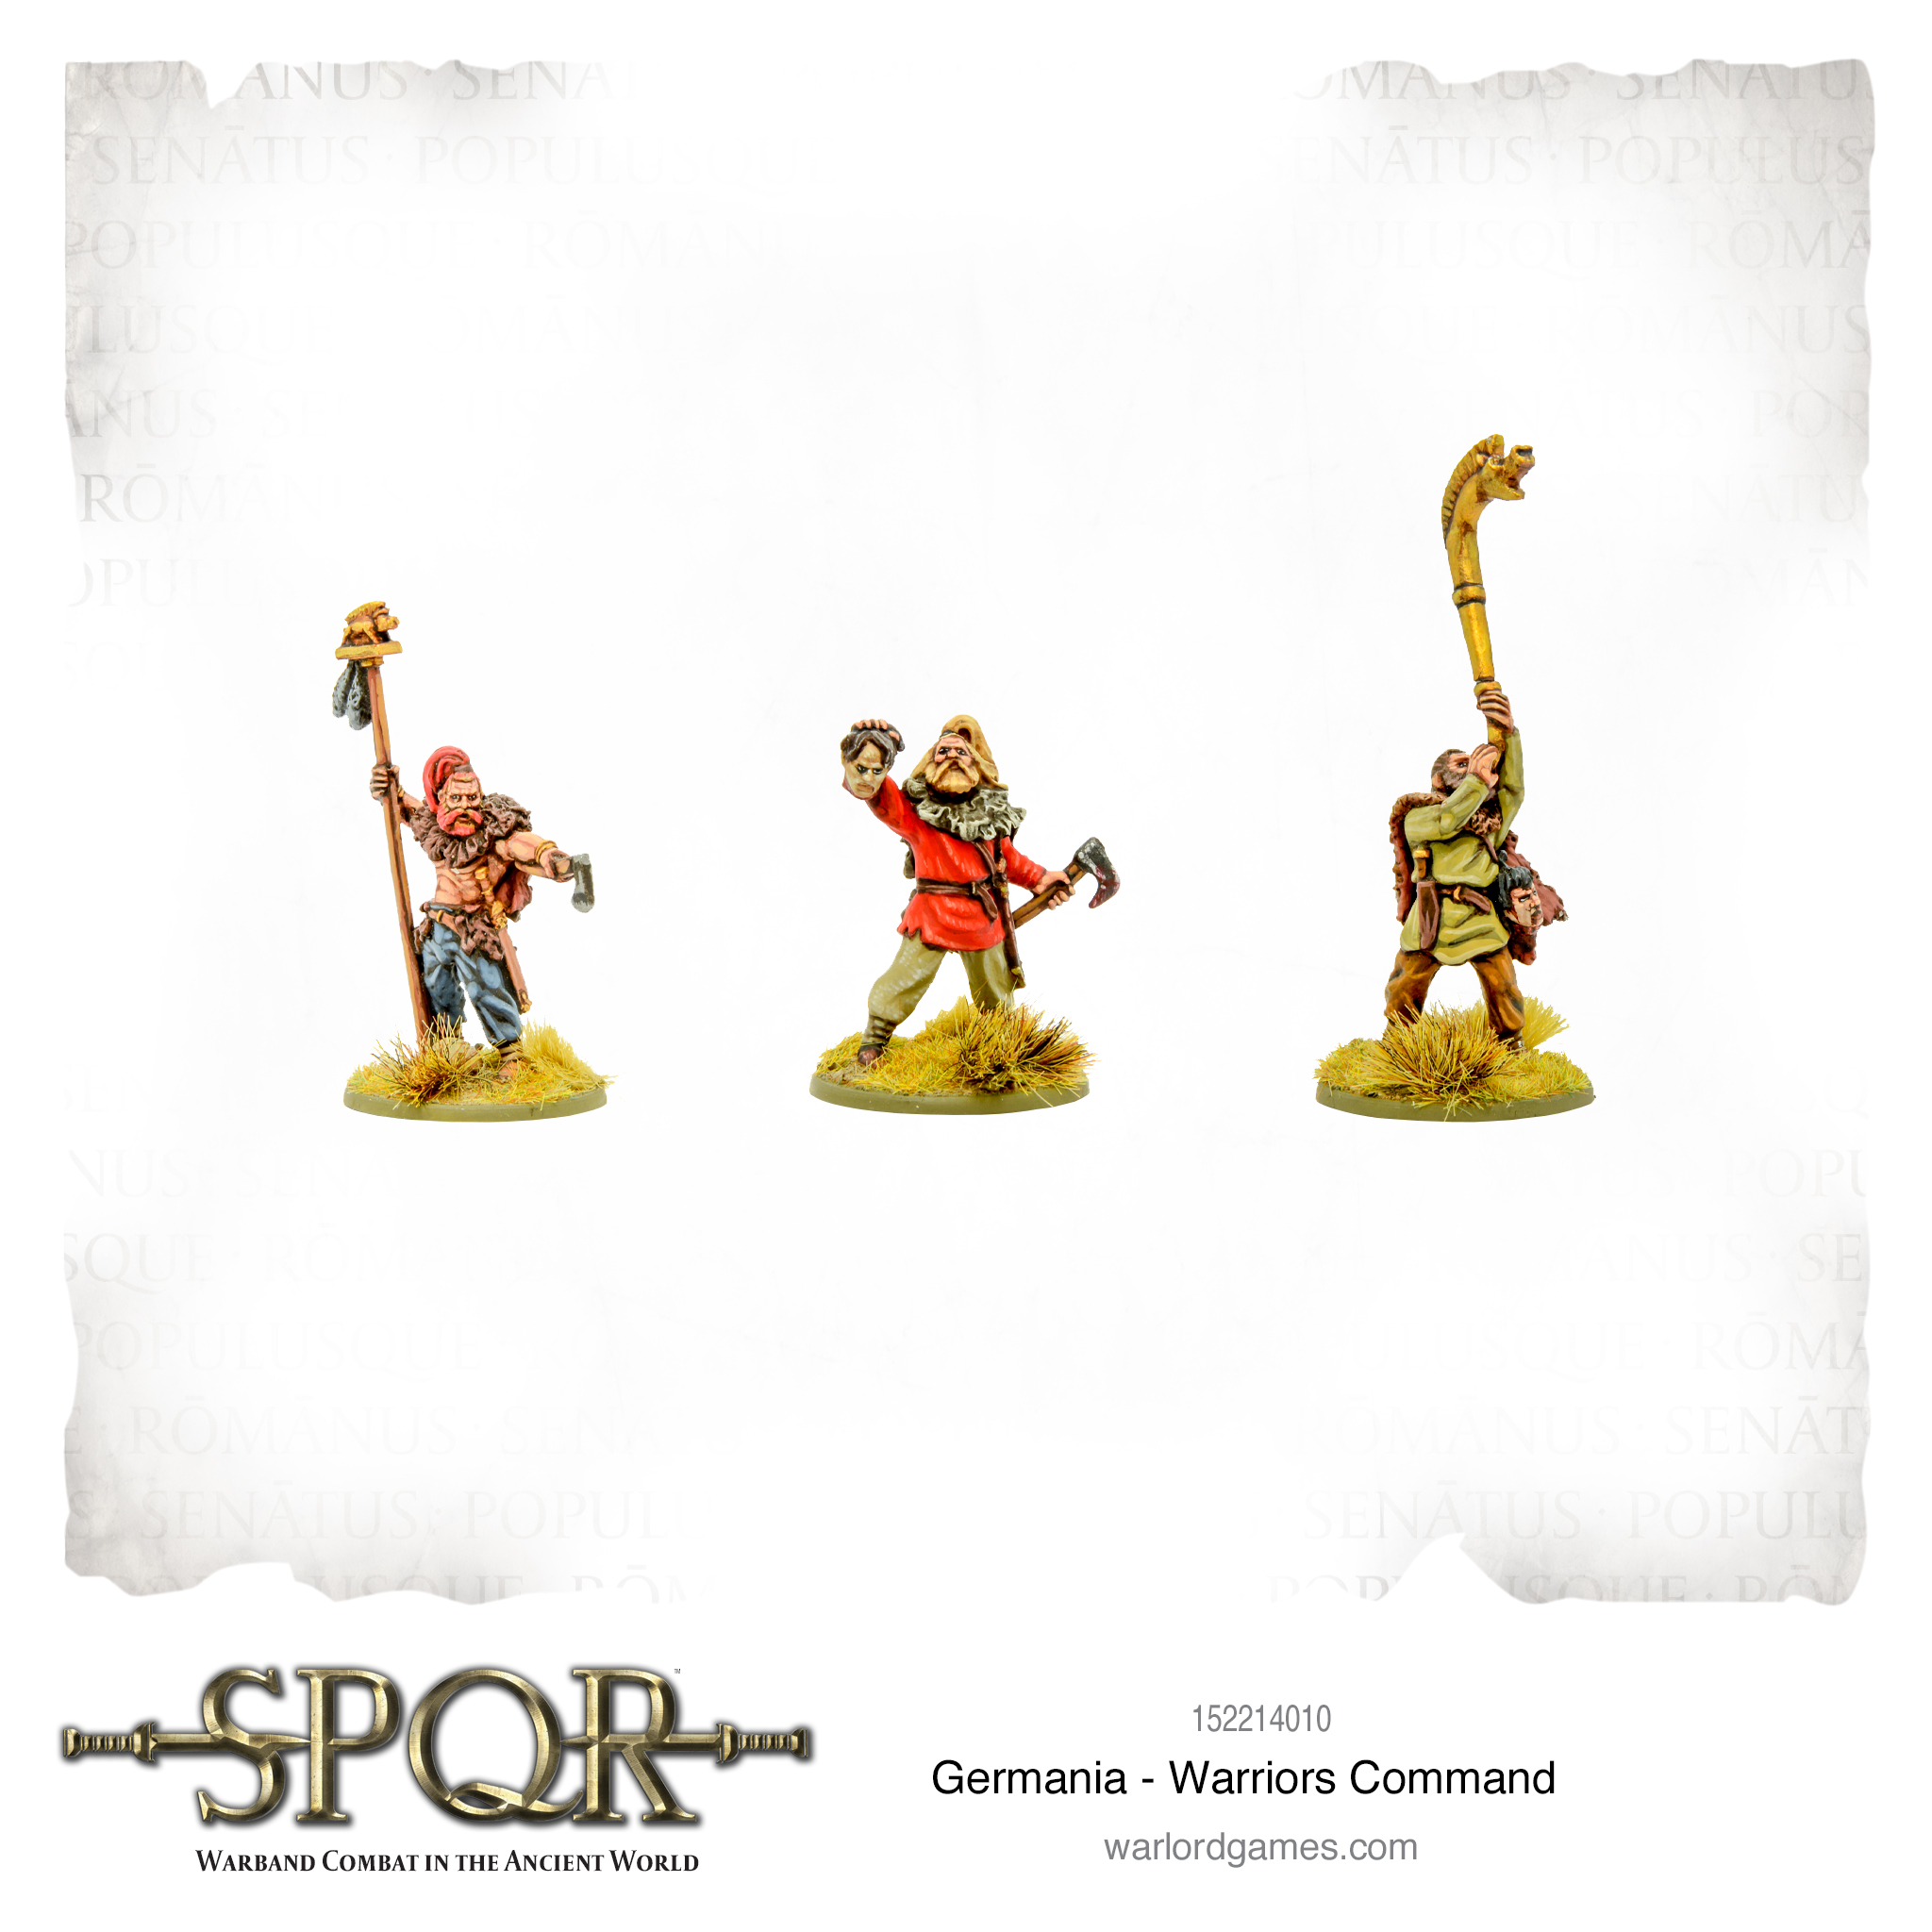 SPQR: Germania - Warriors Command